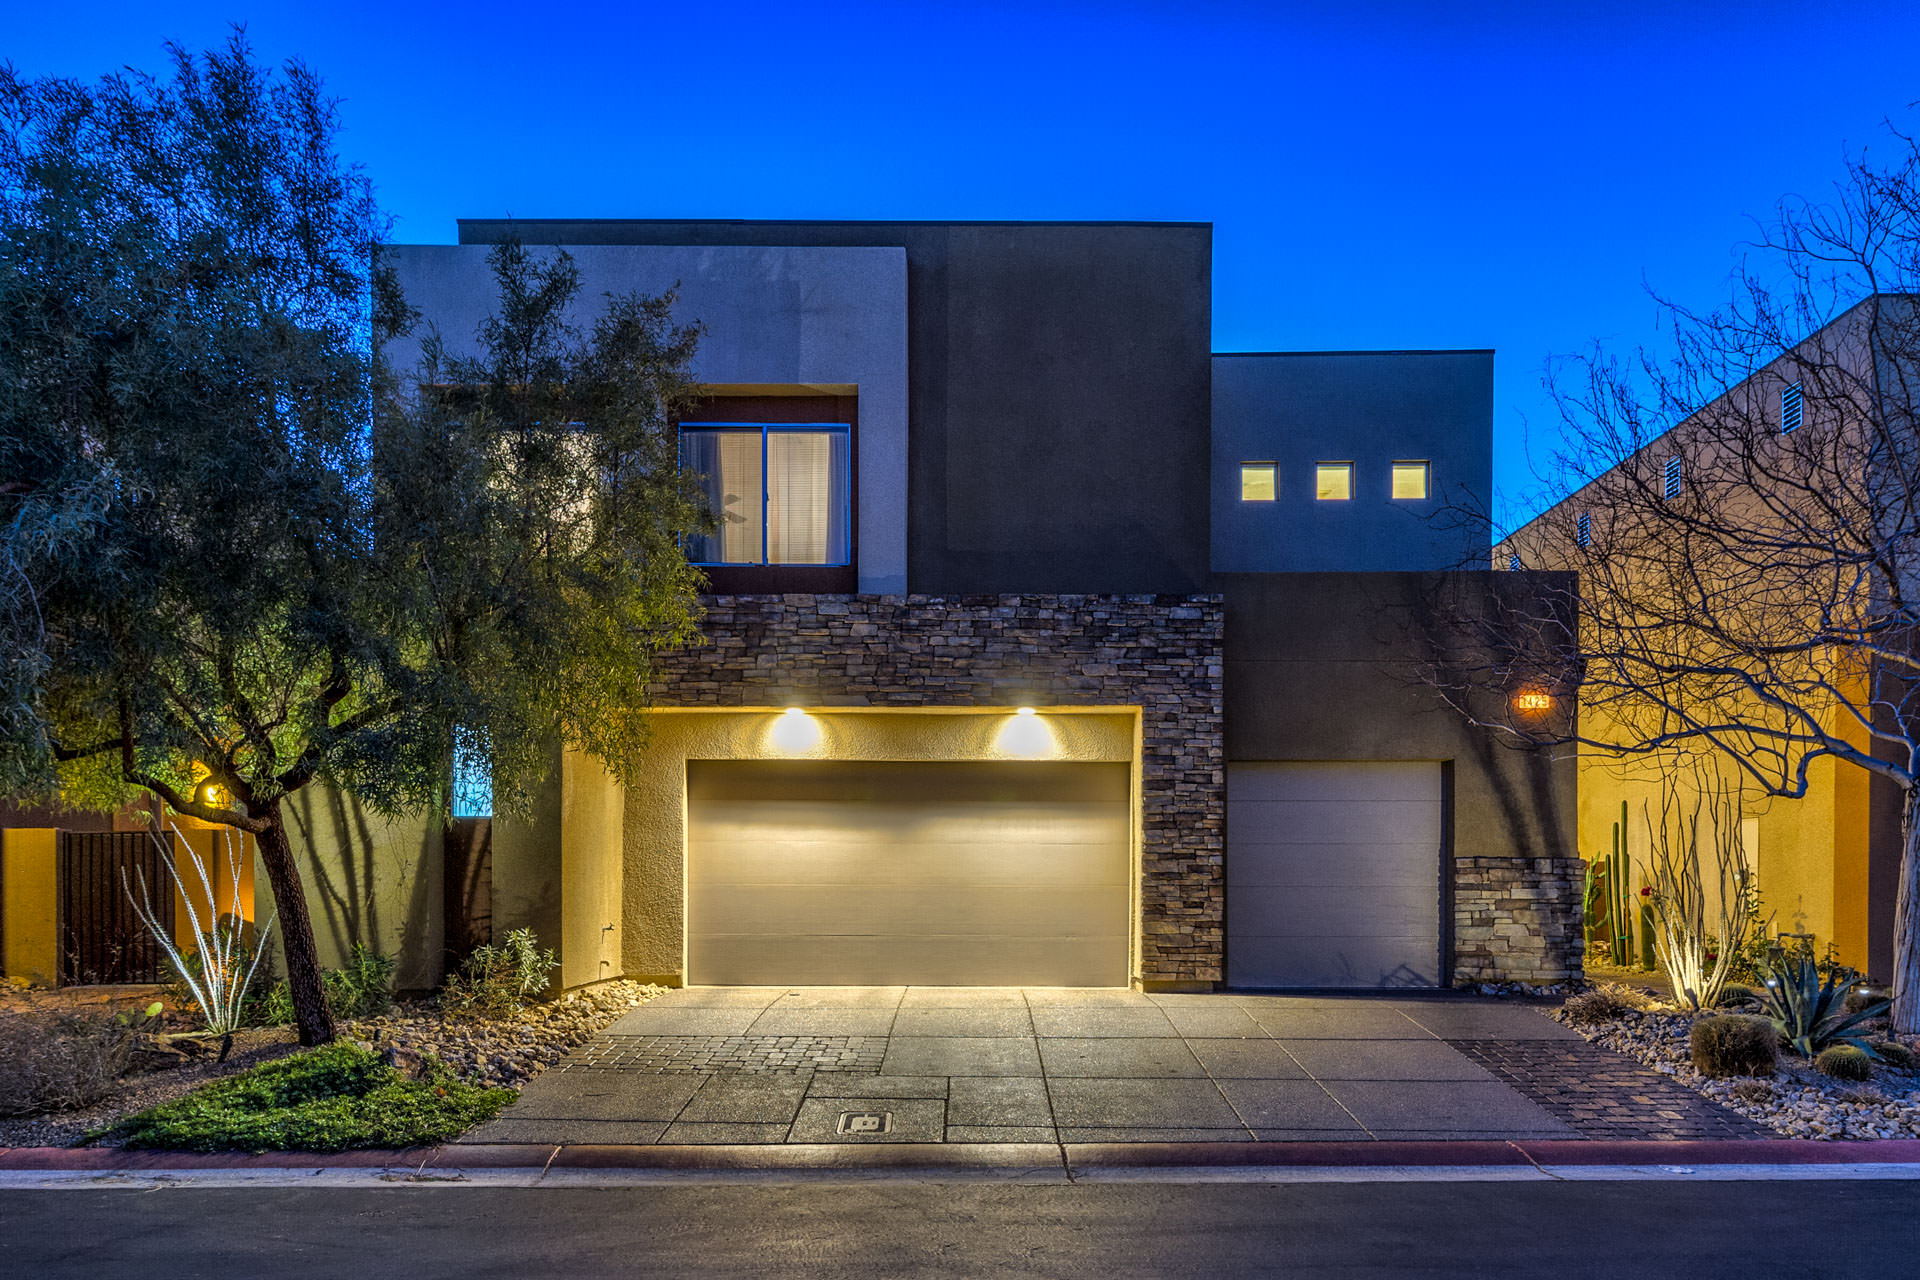 Million Dollar Homes in Las Vegas for Sale | Up to $1m